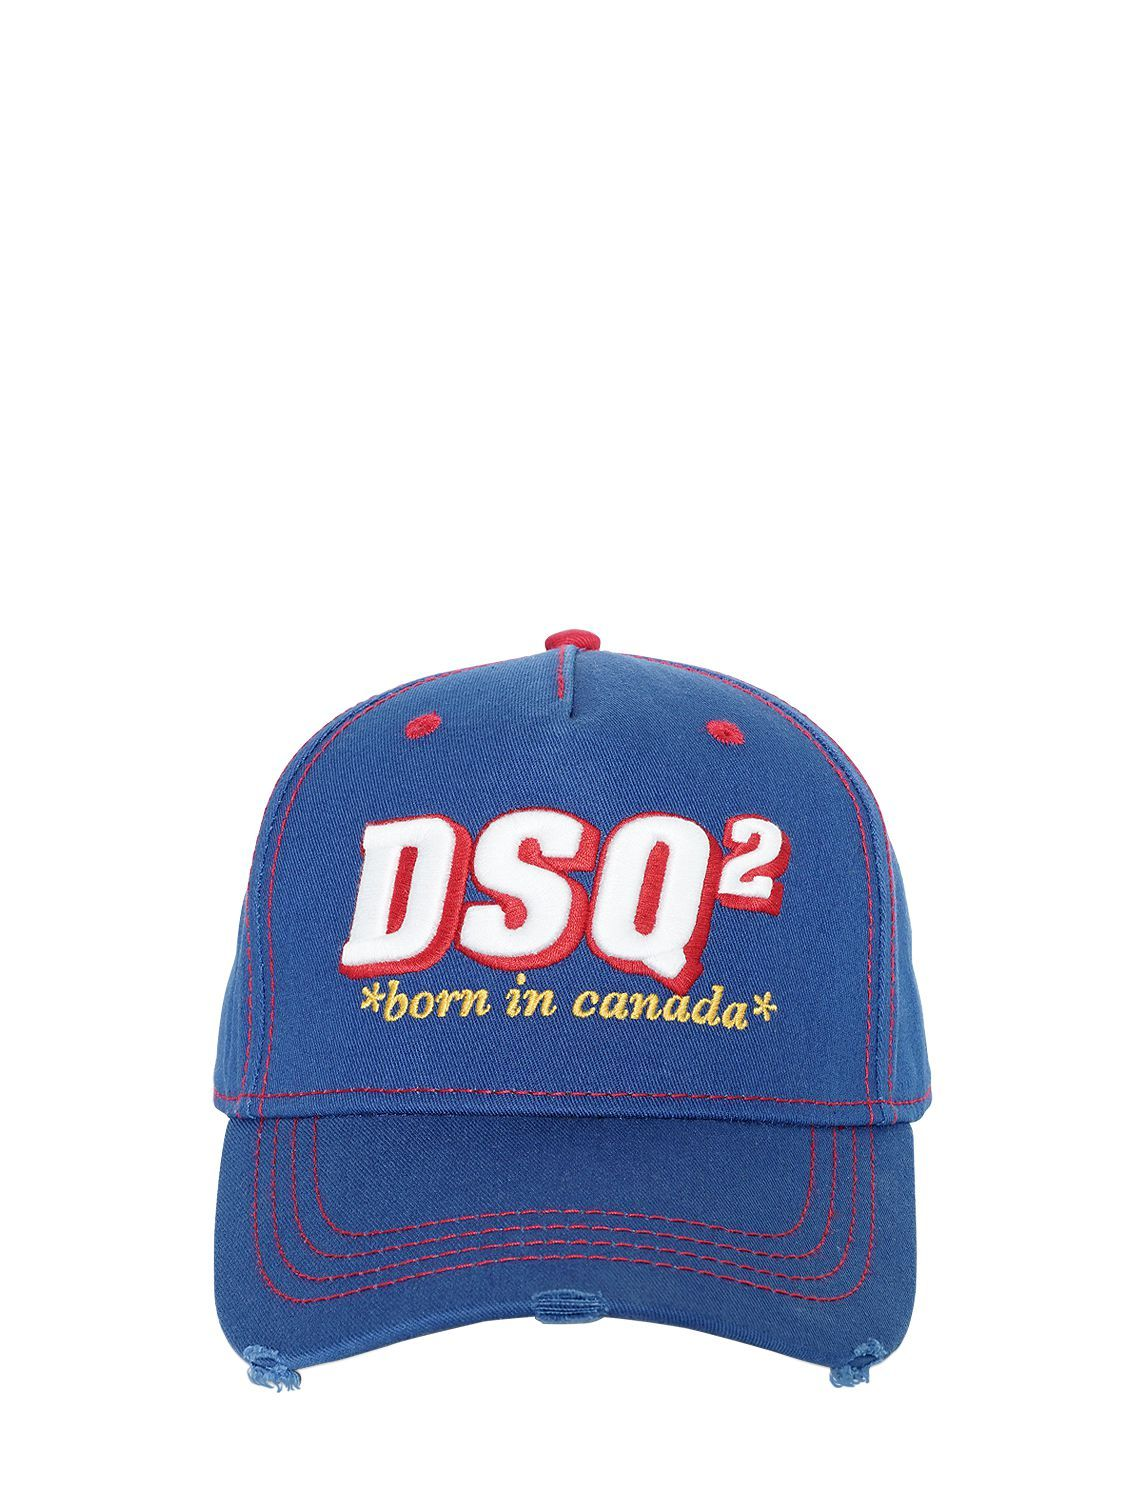 embroidered logo patch baseball cap Dsquared2 b7rRYPf